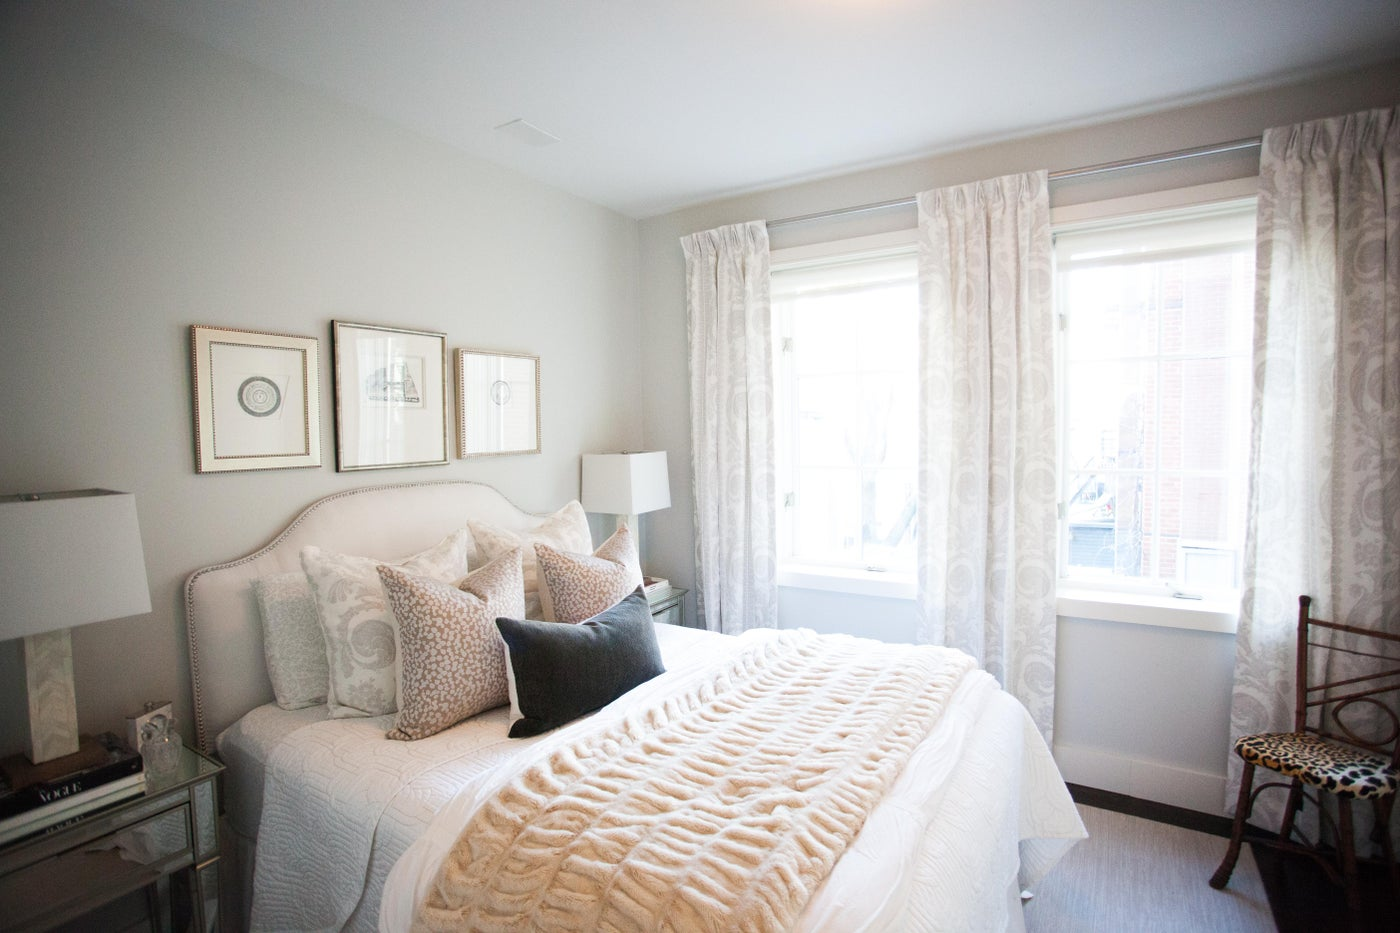 Guest Room in Soft Neutral Tones